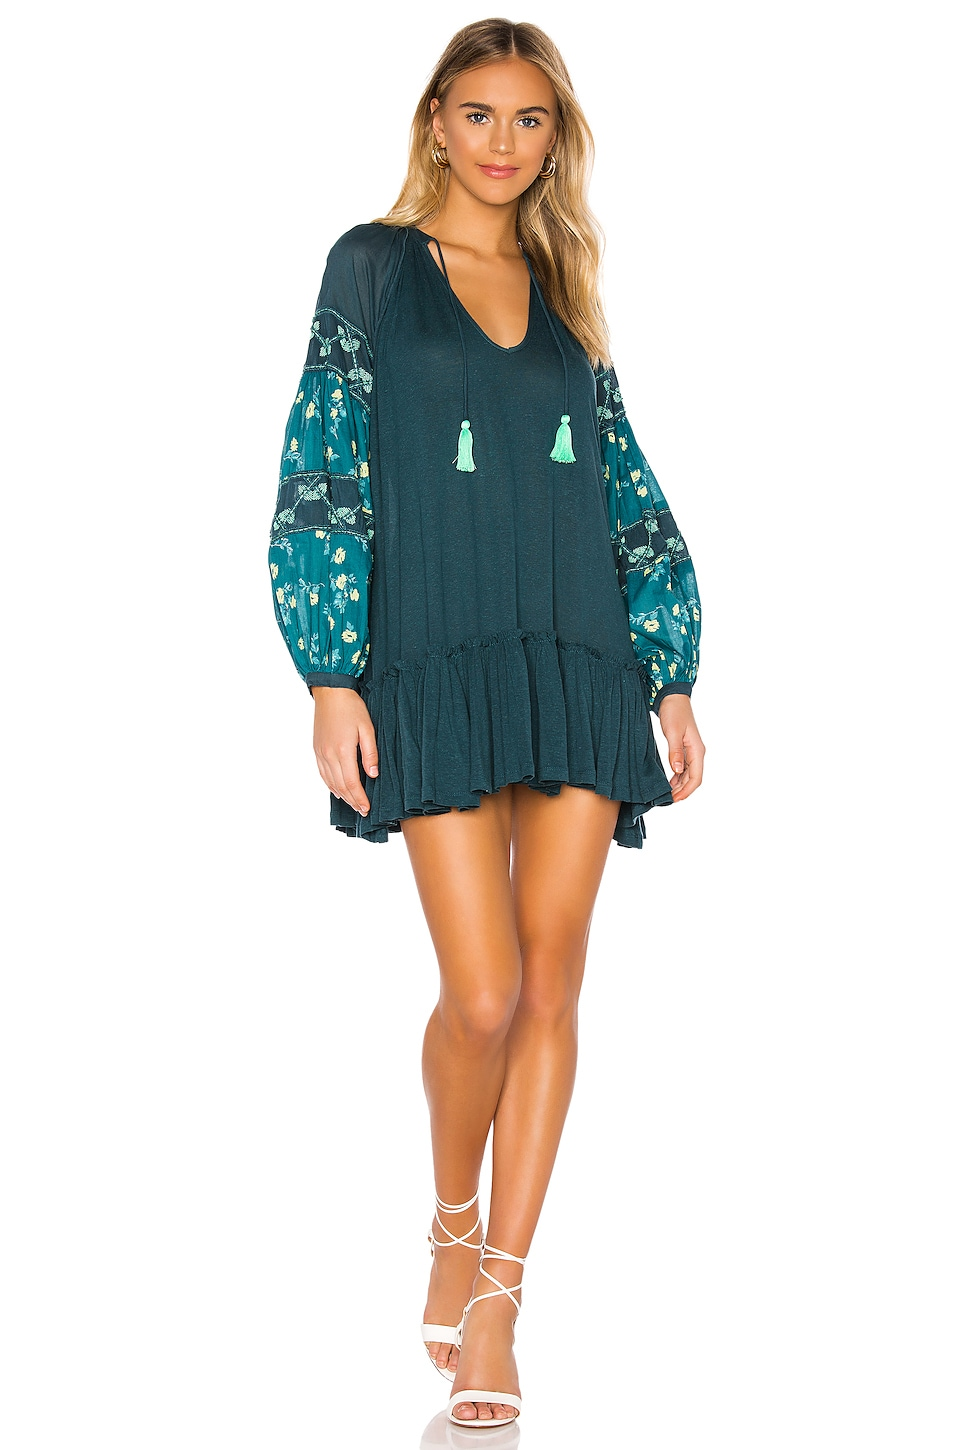 Free People Mix It Up Dress in Green